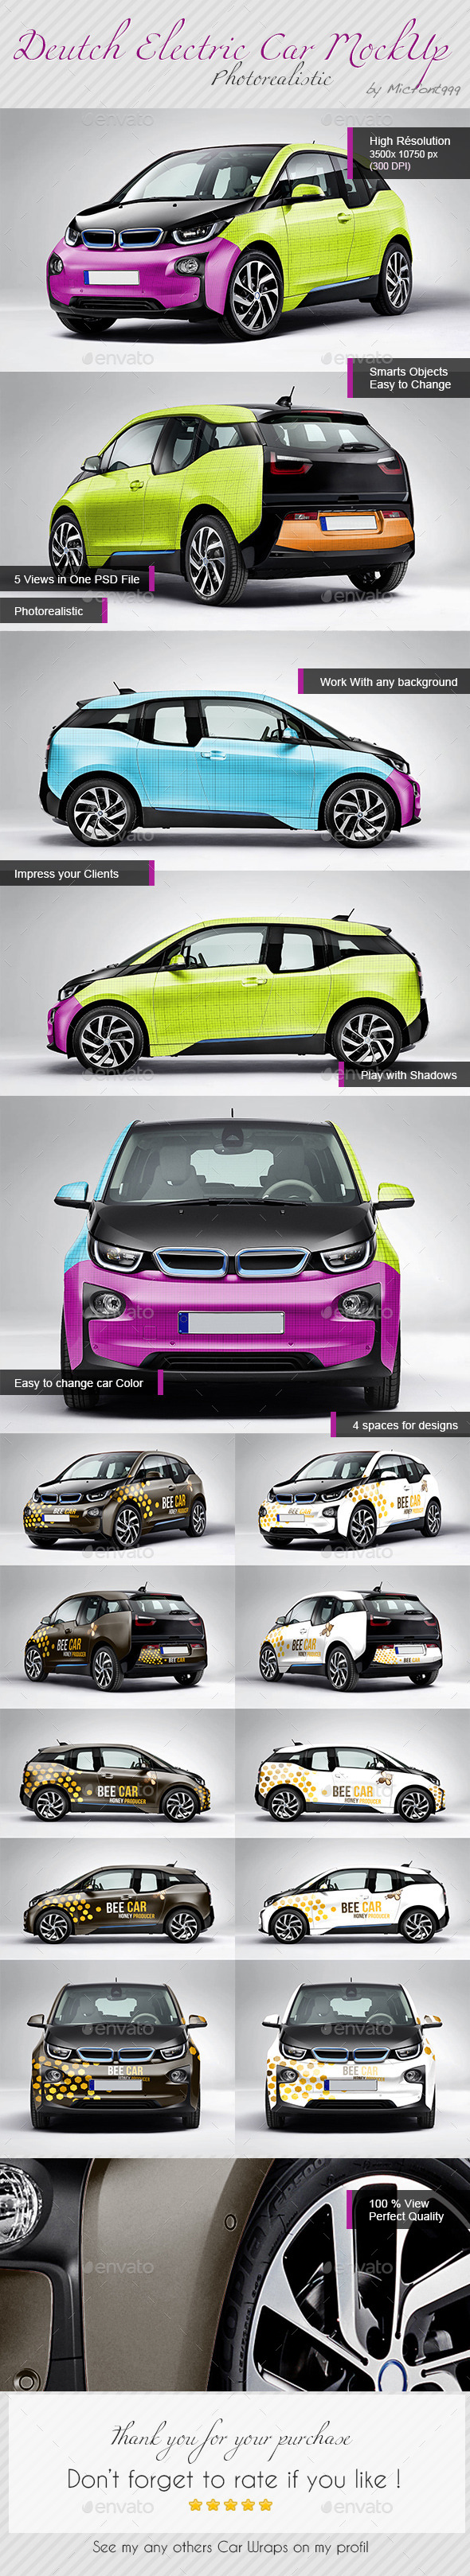 Photorealistic Deutch Electric Car Mock-up - Vehicle Wraps Print